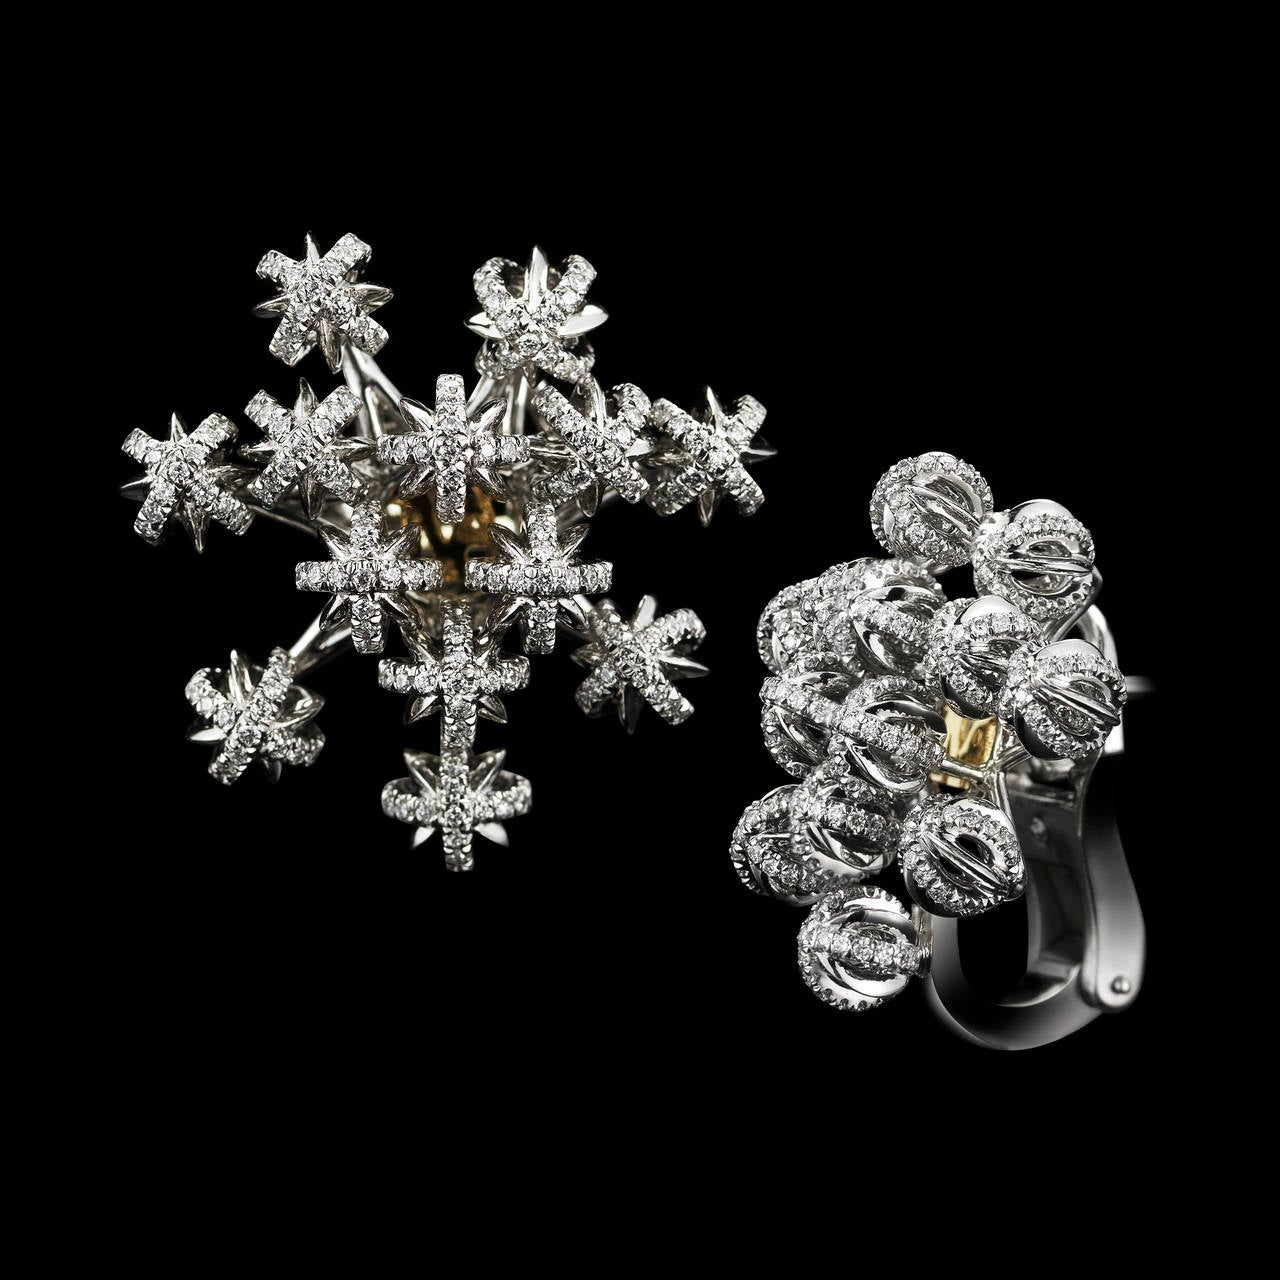 A pair of domed petite Diamond snowflake cluster earrings detailed with Alexandra Mor signature floating Diamond melee and knife-edged wire. Earrings are set in platinum on 18 karat yellow gold Alexandra Mor logo gallery. Earrings feature 754 round